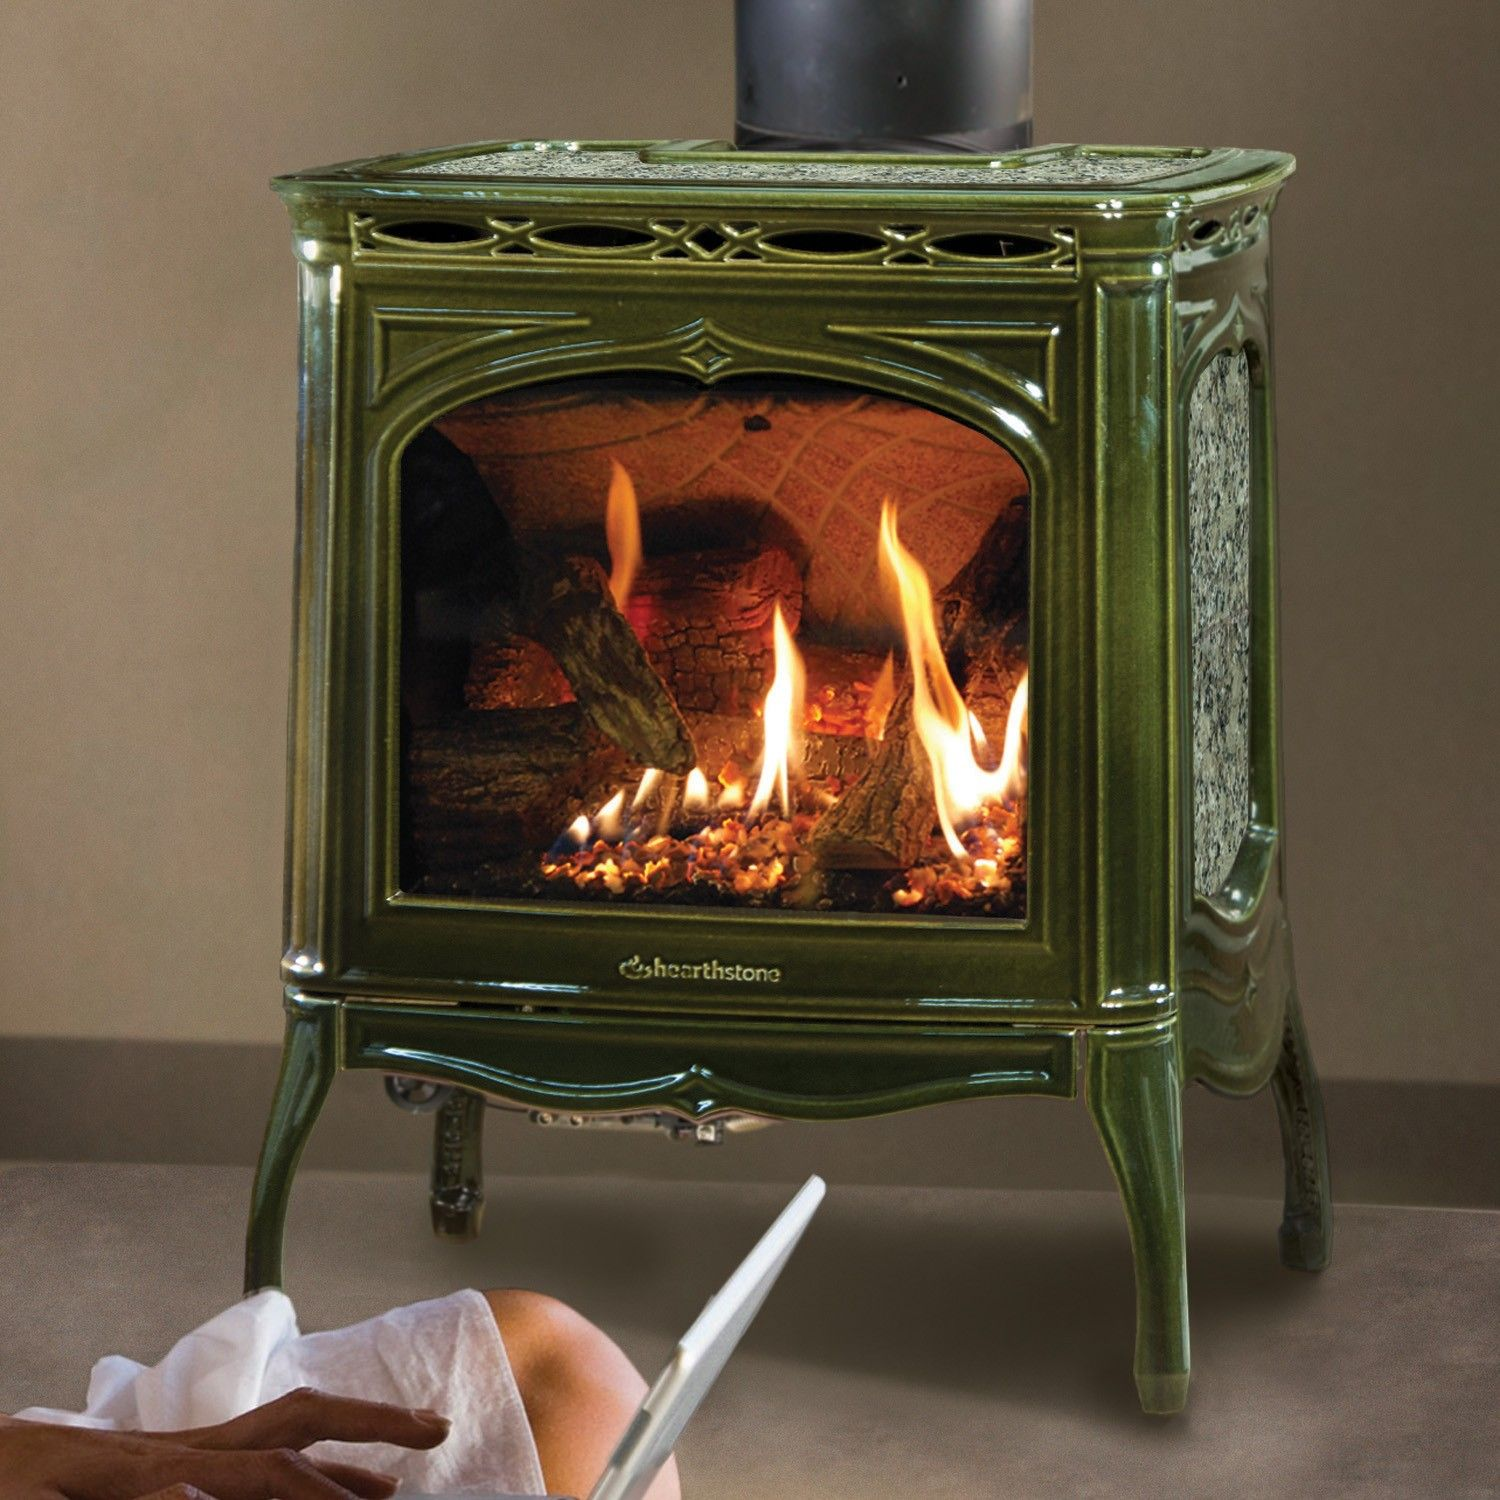 Tucson dx 8702 gas stove with basil enamel pine green finish by hearthstone heats up to 1200 - Small space wood stove model ...